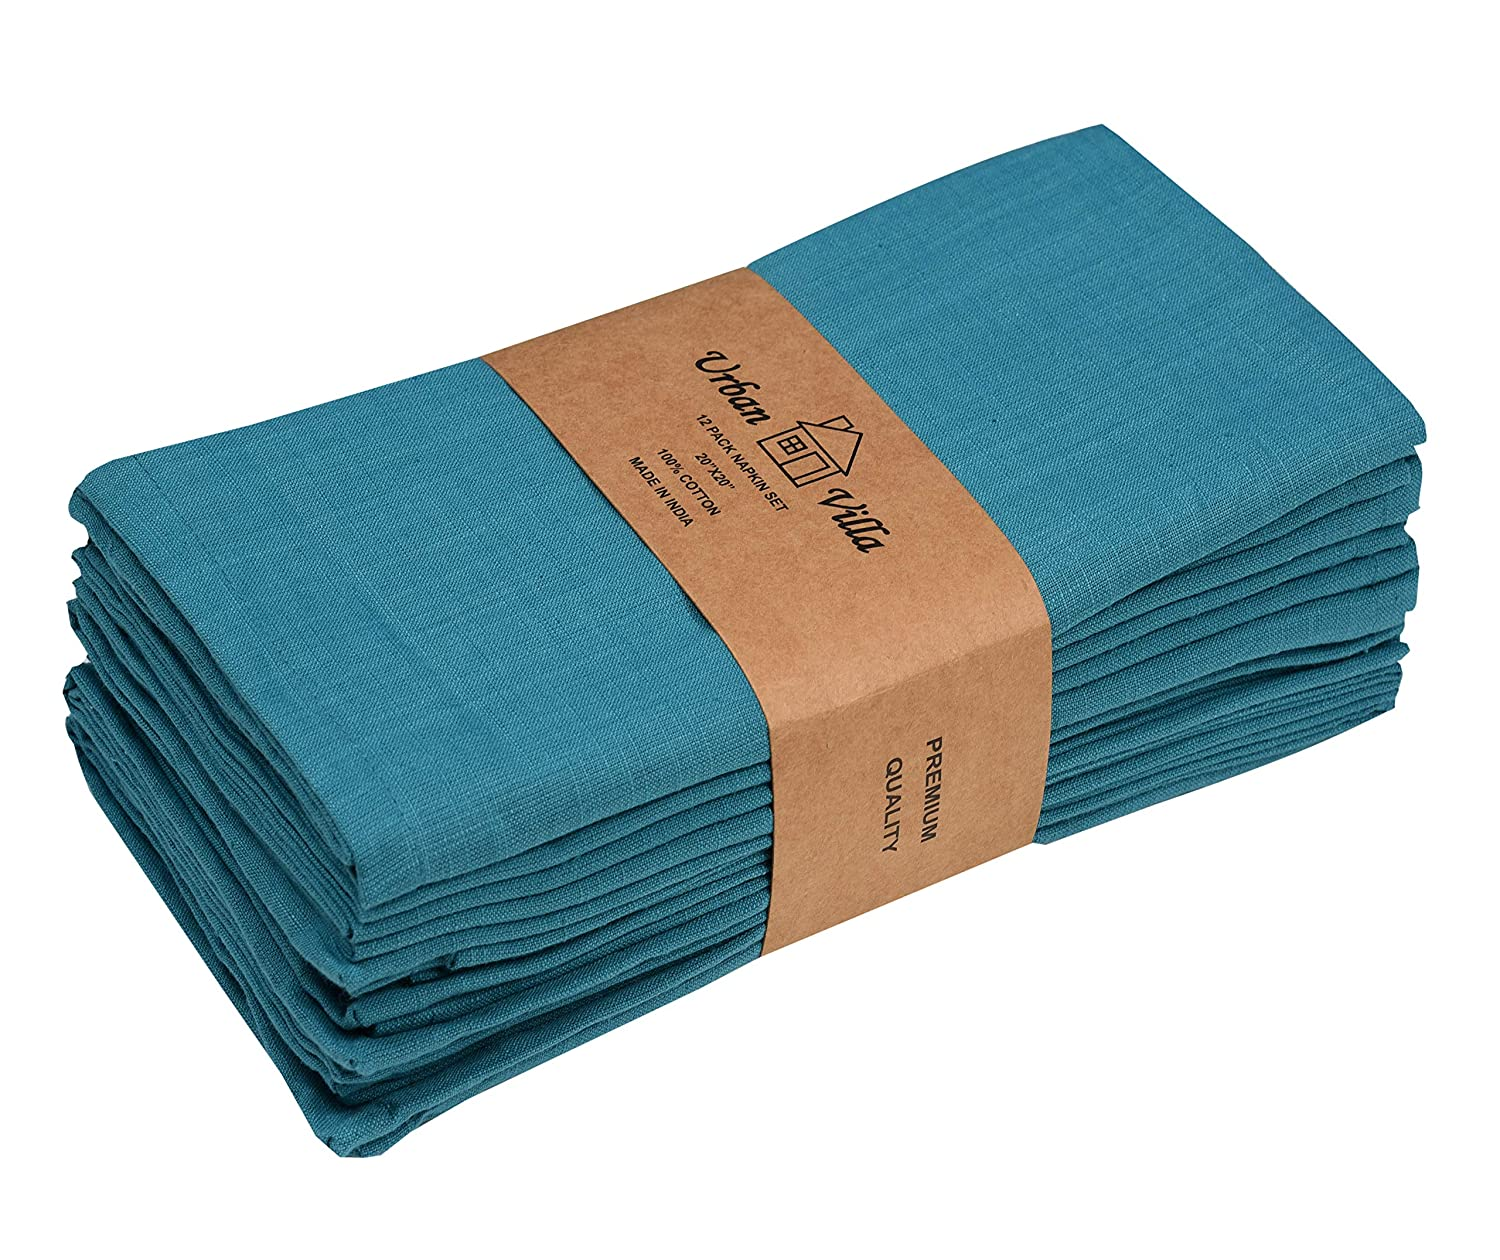 Everyday Use Set of 12 Ultra Soft Premium Quality,100/% Cotton Slub Over sized Cloth Napkins with Mitered Corners Durable Hotel Quality Solid Slub Red Color,Dinner Napkins Size 20X20 Inch